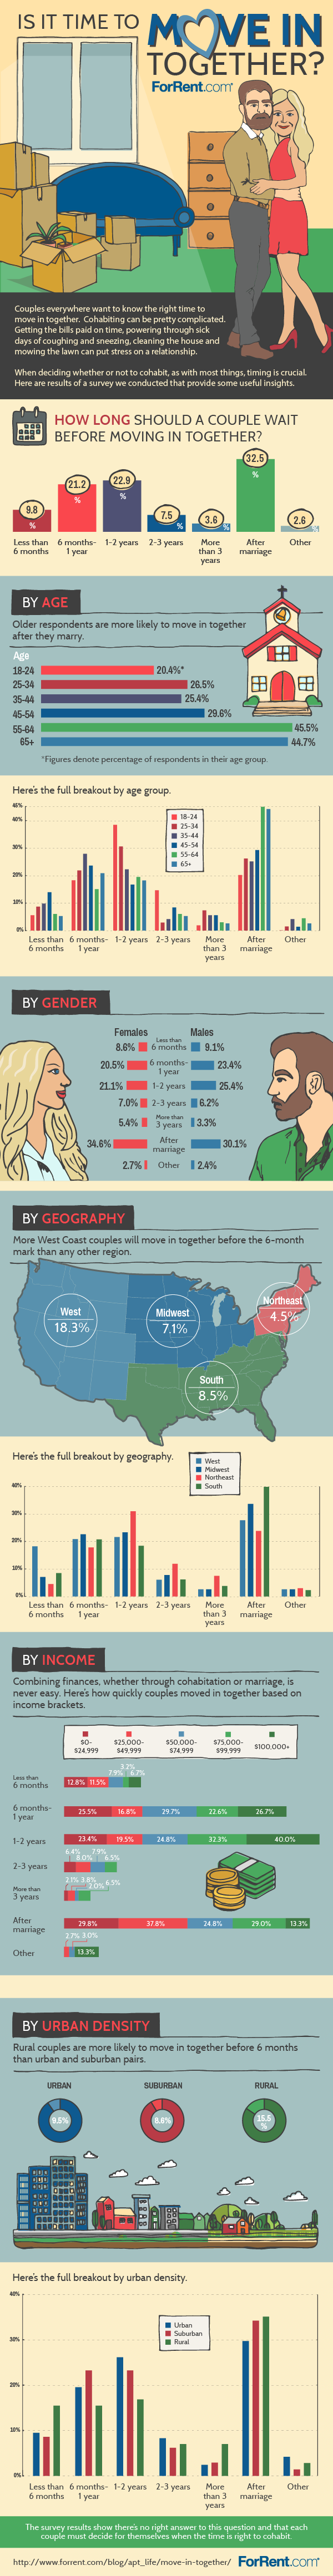 Couples Cohabitating - The Stats